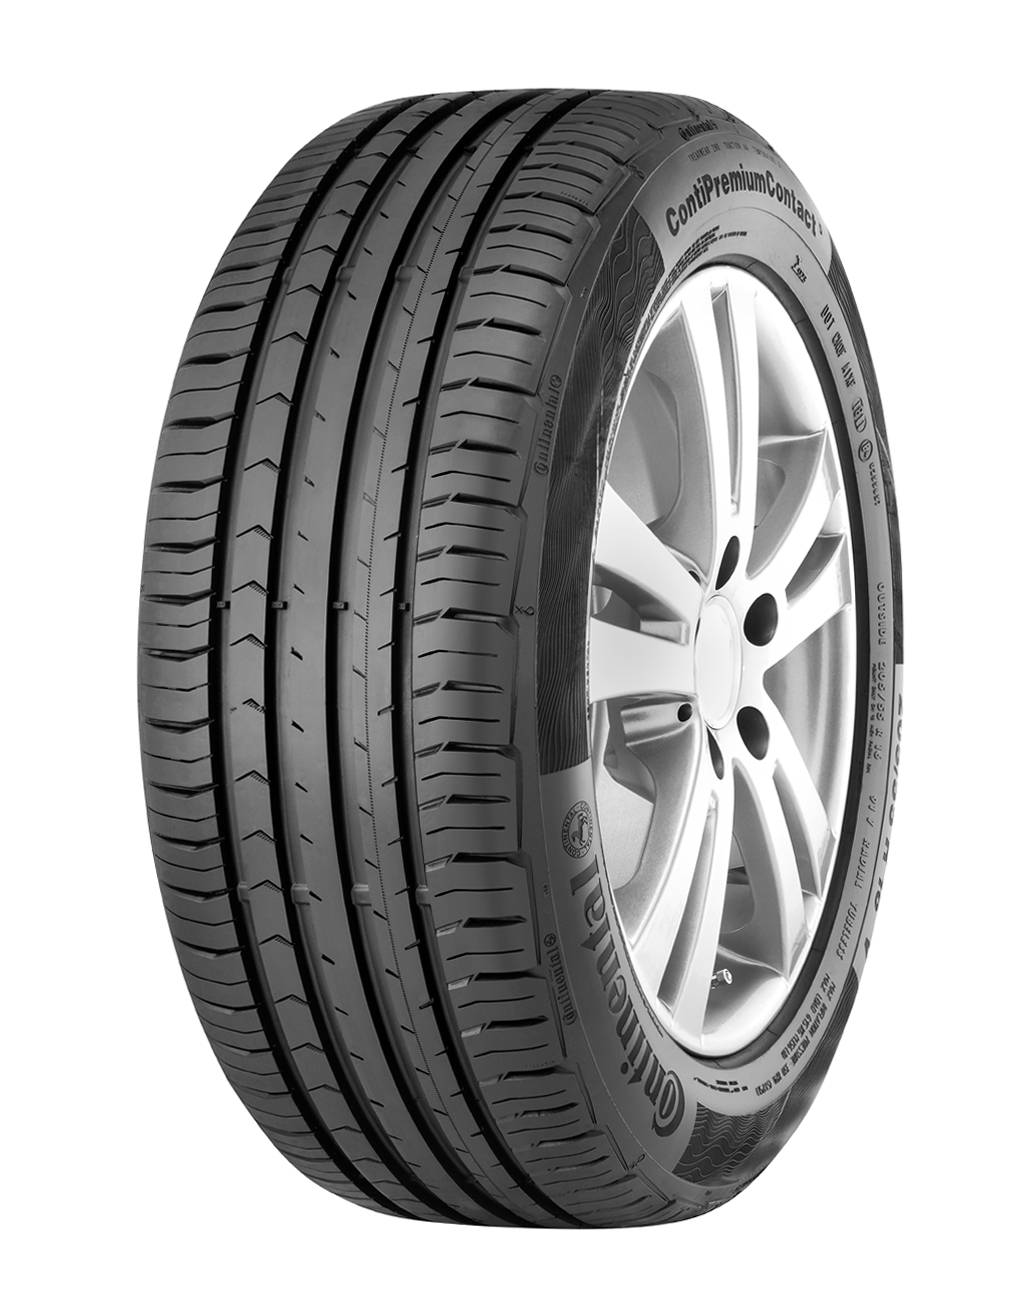 4x Continental ContiPremiumContact 5 195/65 R15 91